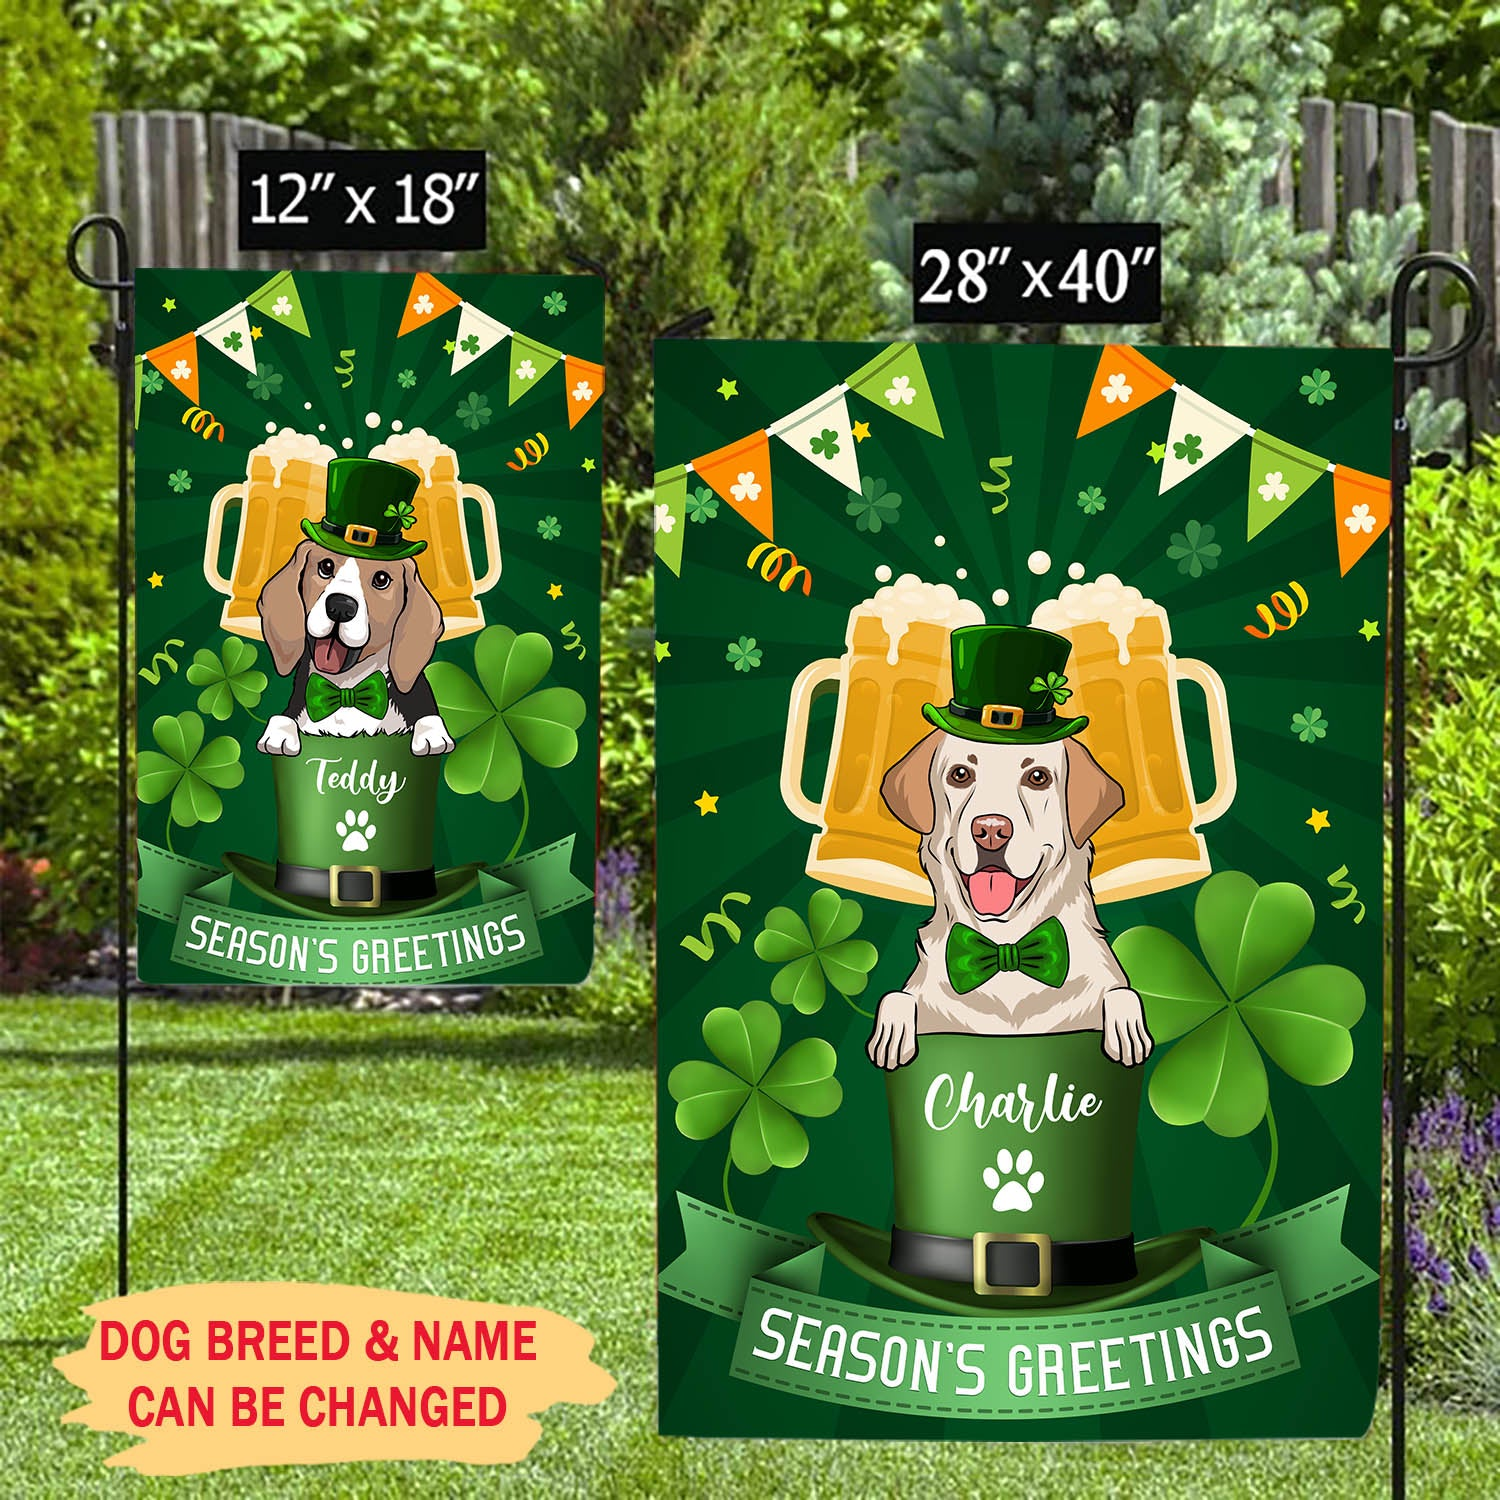 Season's Greetings - Personalized Custom Garden Flag - St. Patrick's Day Decorations